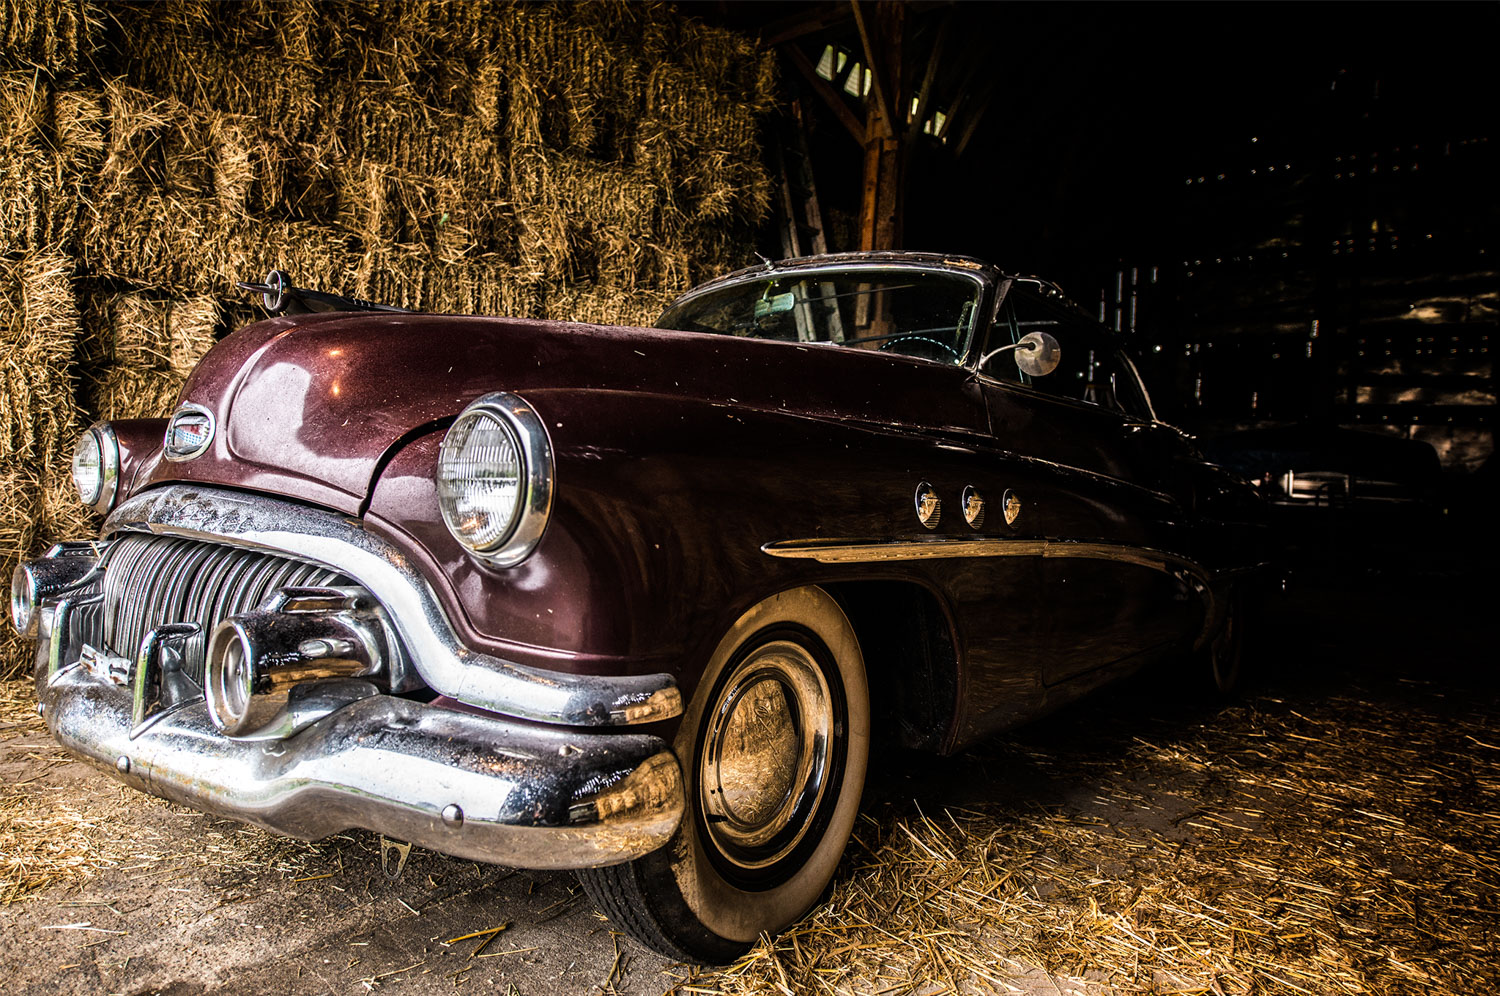 buick in the barn